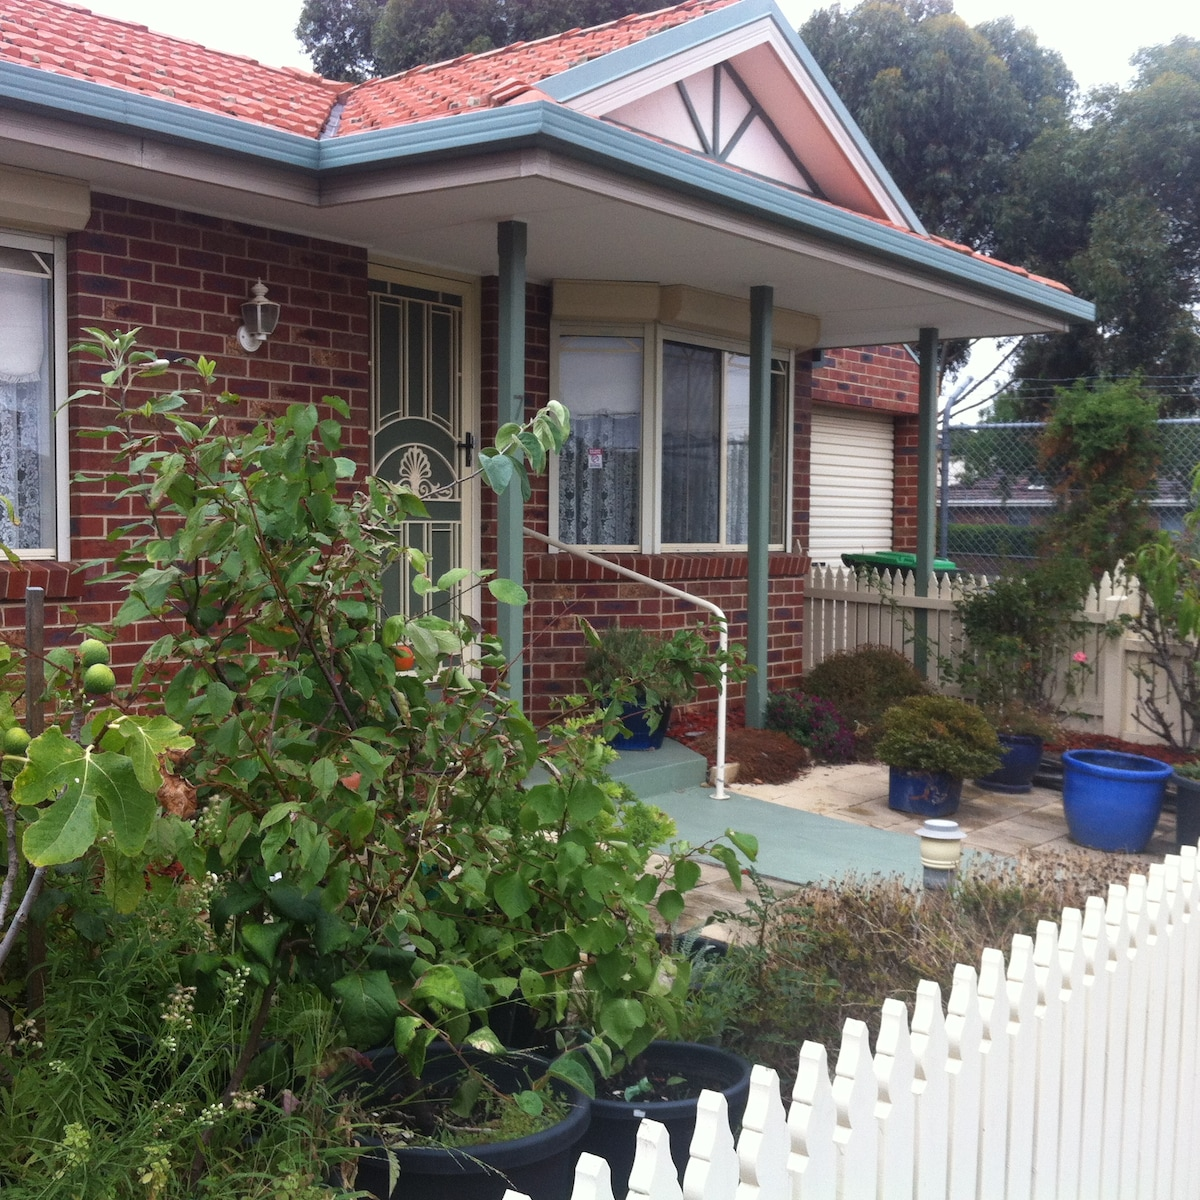 Sweet 2BR unit close to train/shops